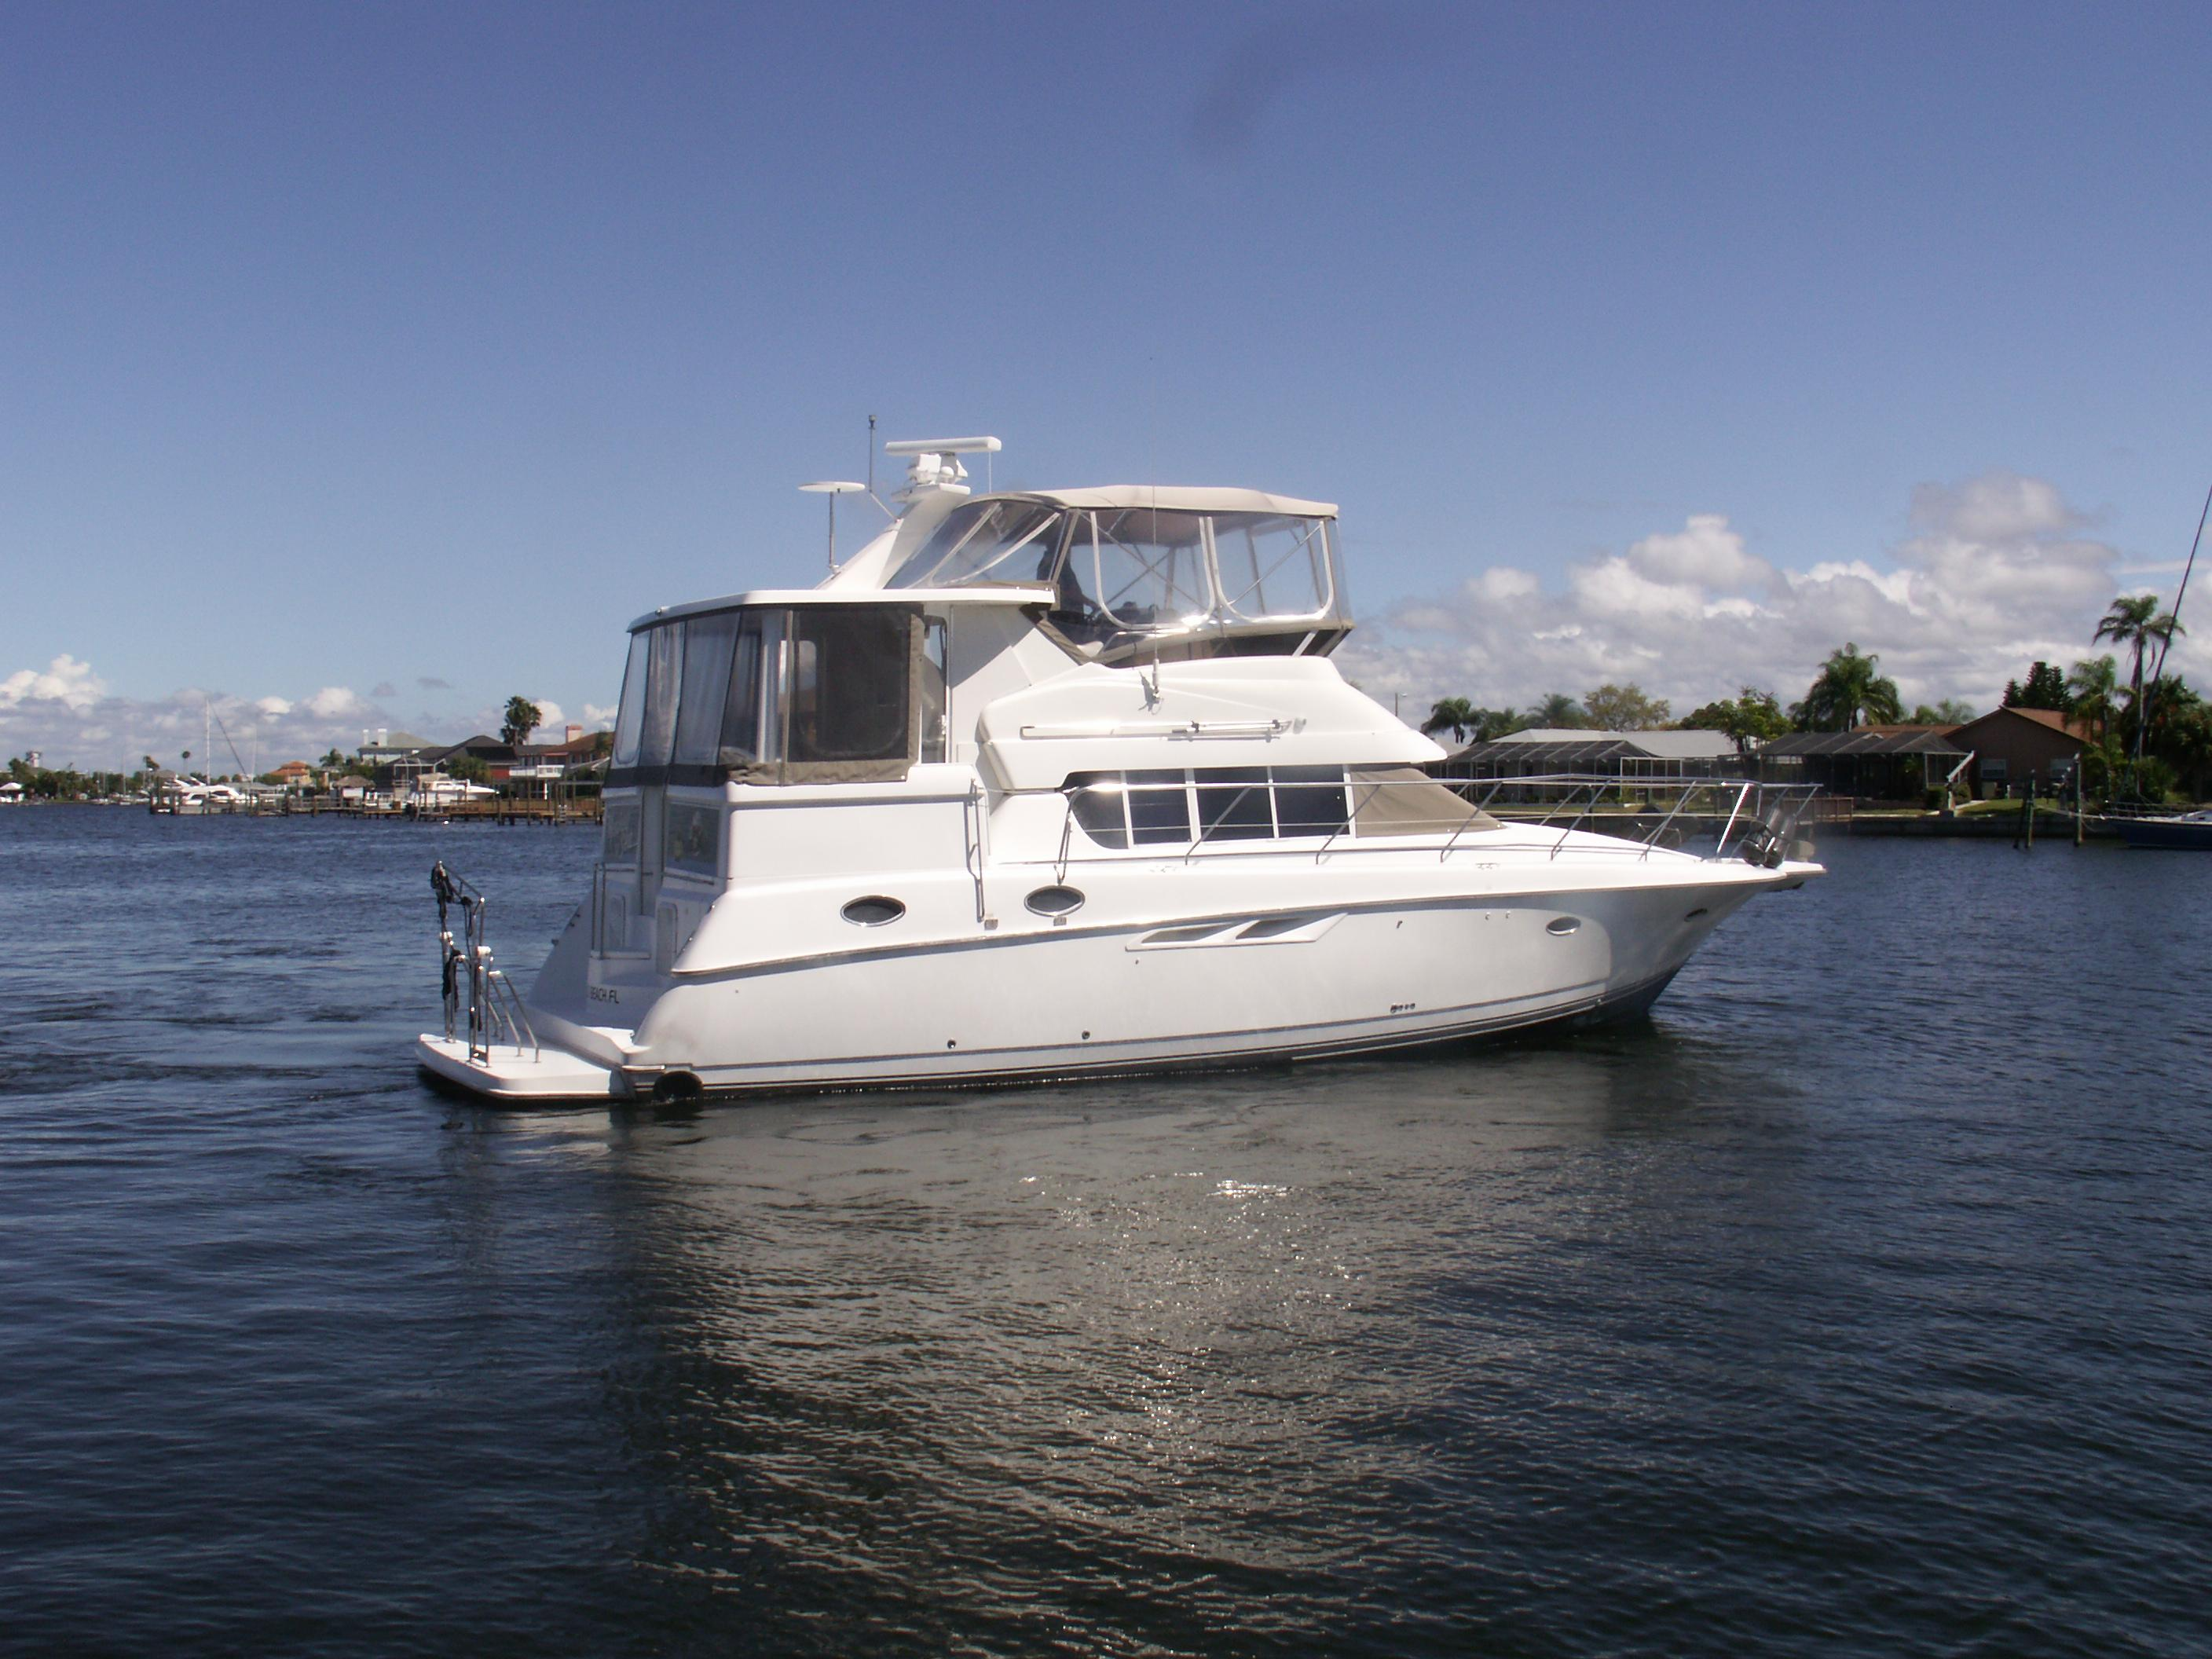 Used silverton yachts for sale mls boat search results for Silverton motor yachts for sale